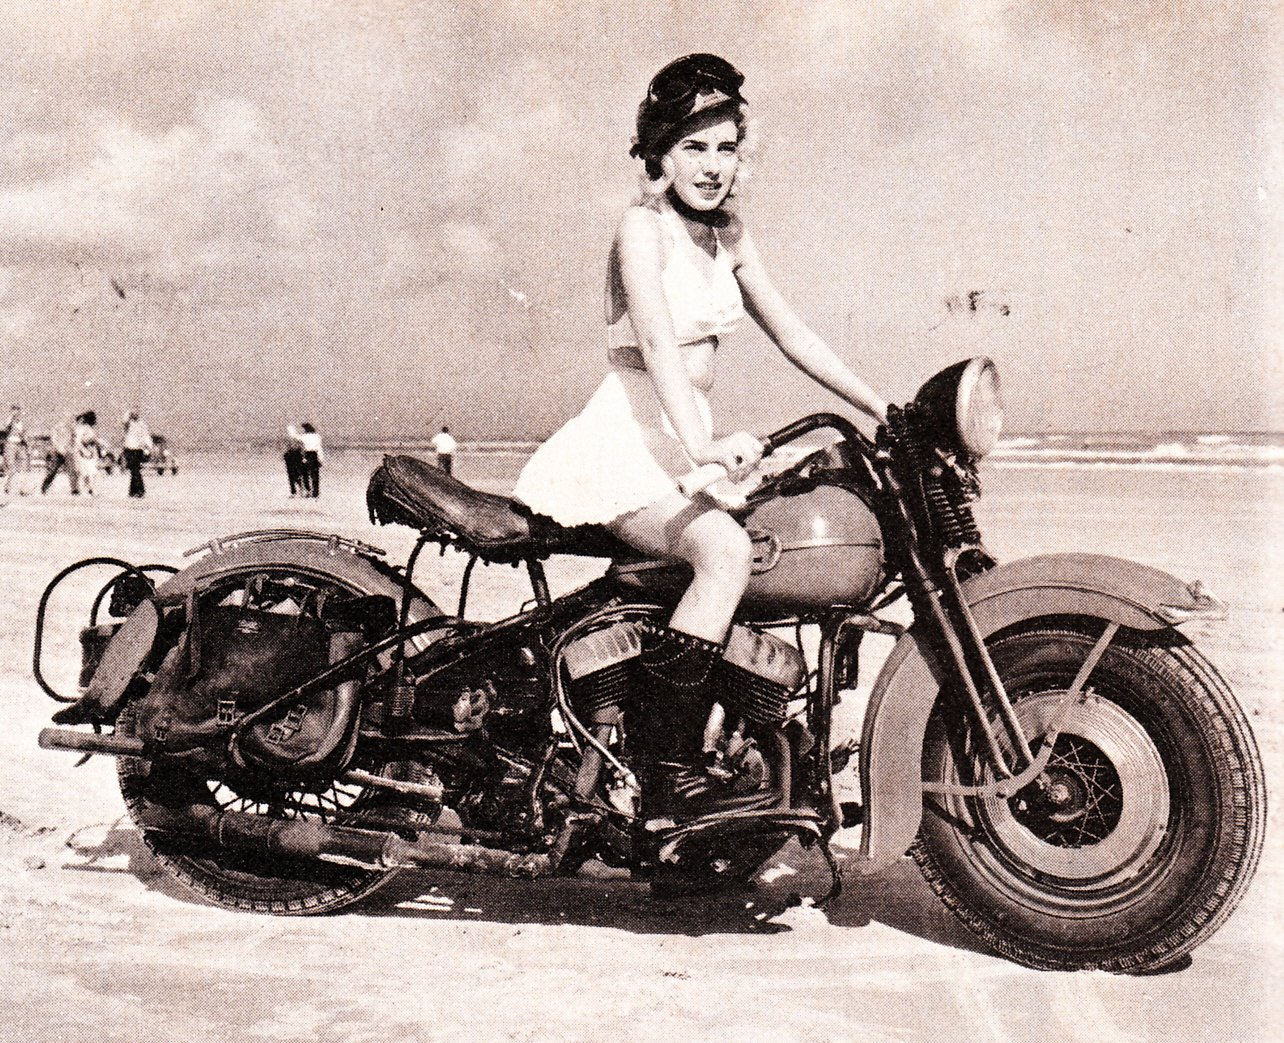 Vintage girls on motorcycles